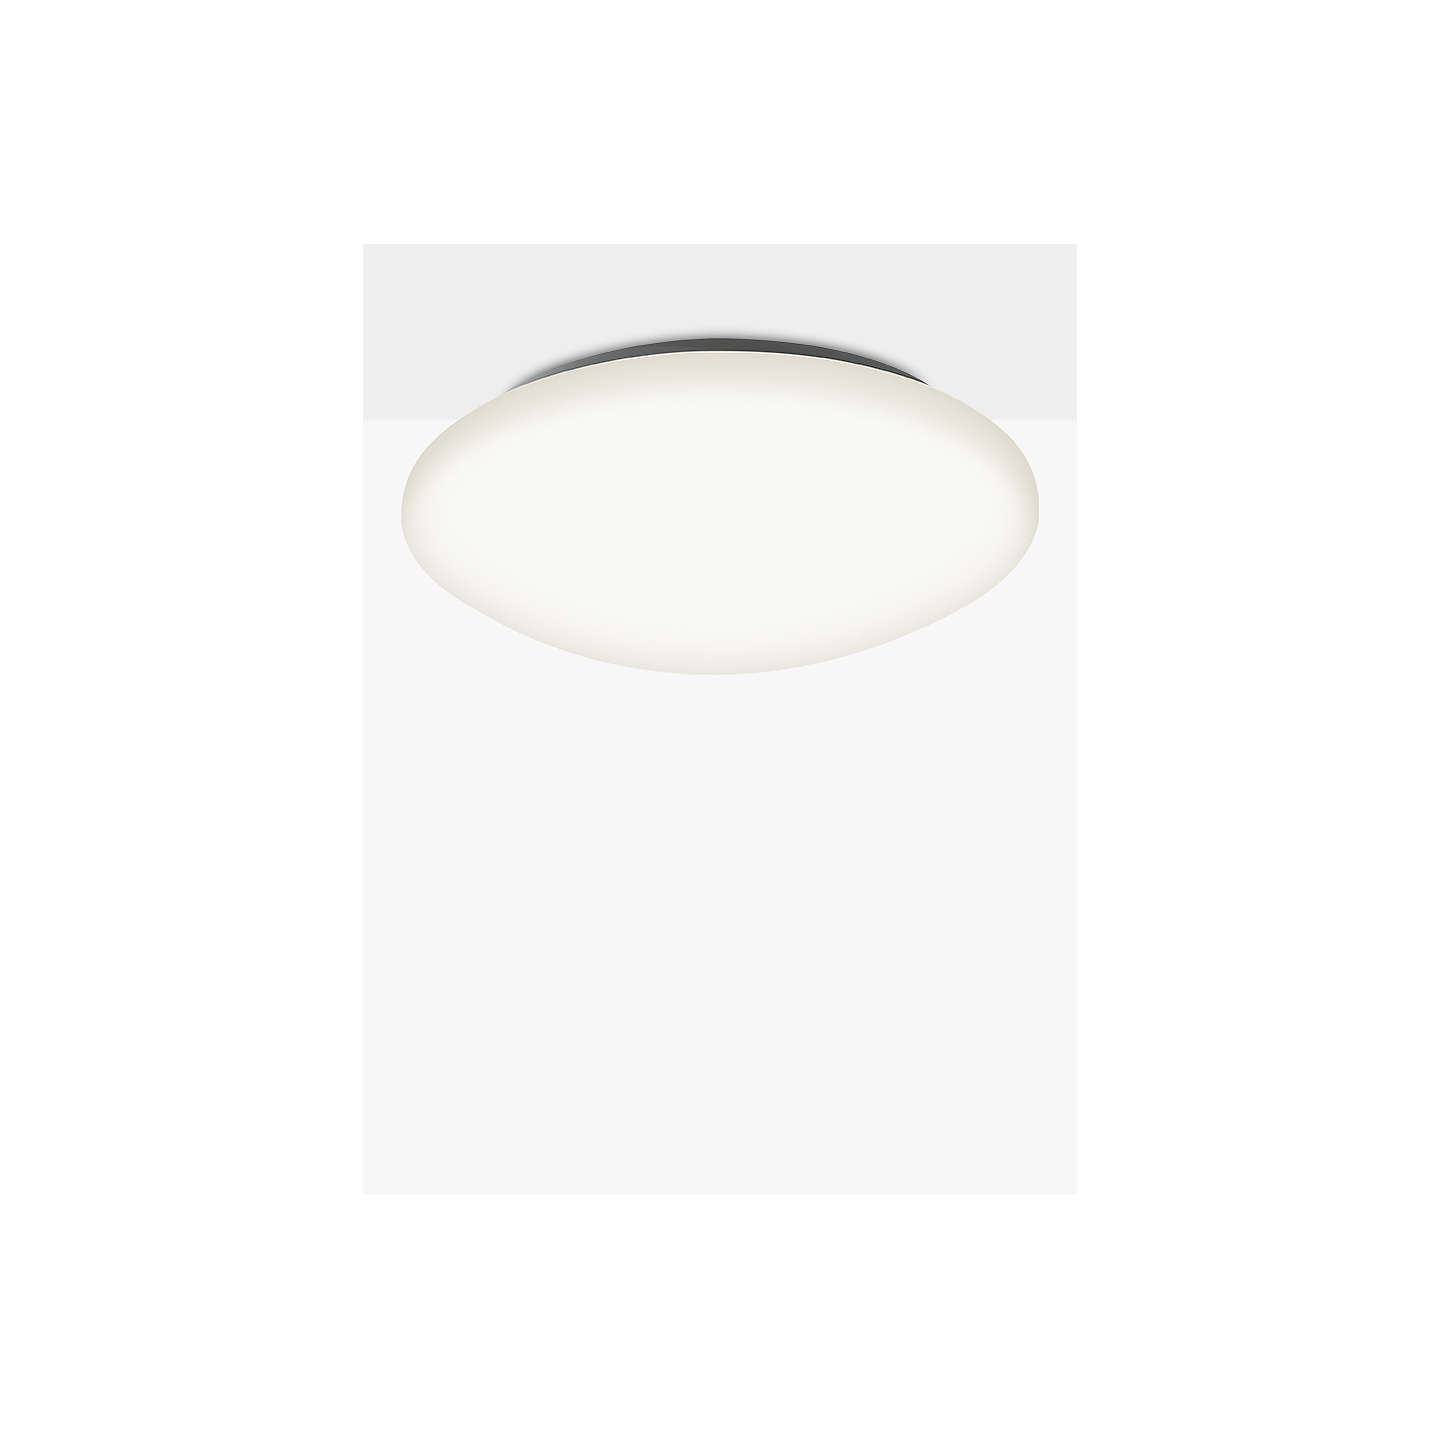 astro massa led flush bathroom ceiling light white at john lewis